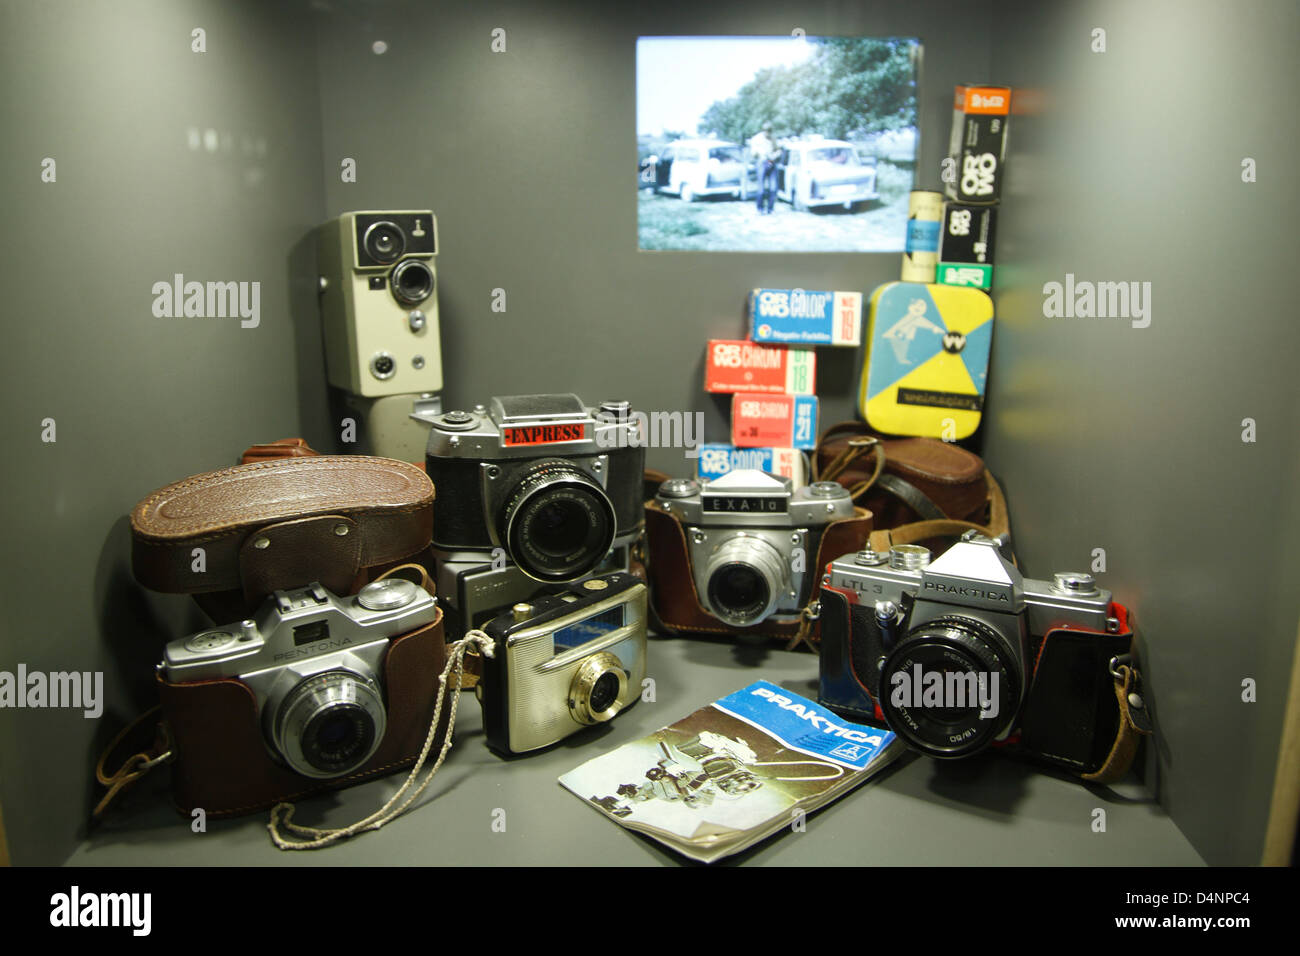 DDR-Museum at the Spree, Cameras from DDR produktion,  Berlin, Germany Stock Photo